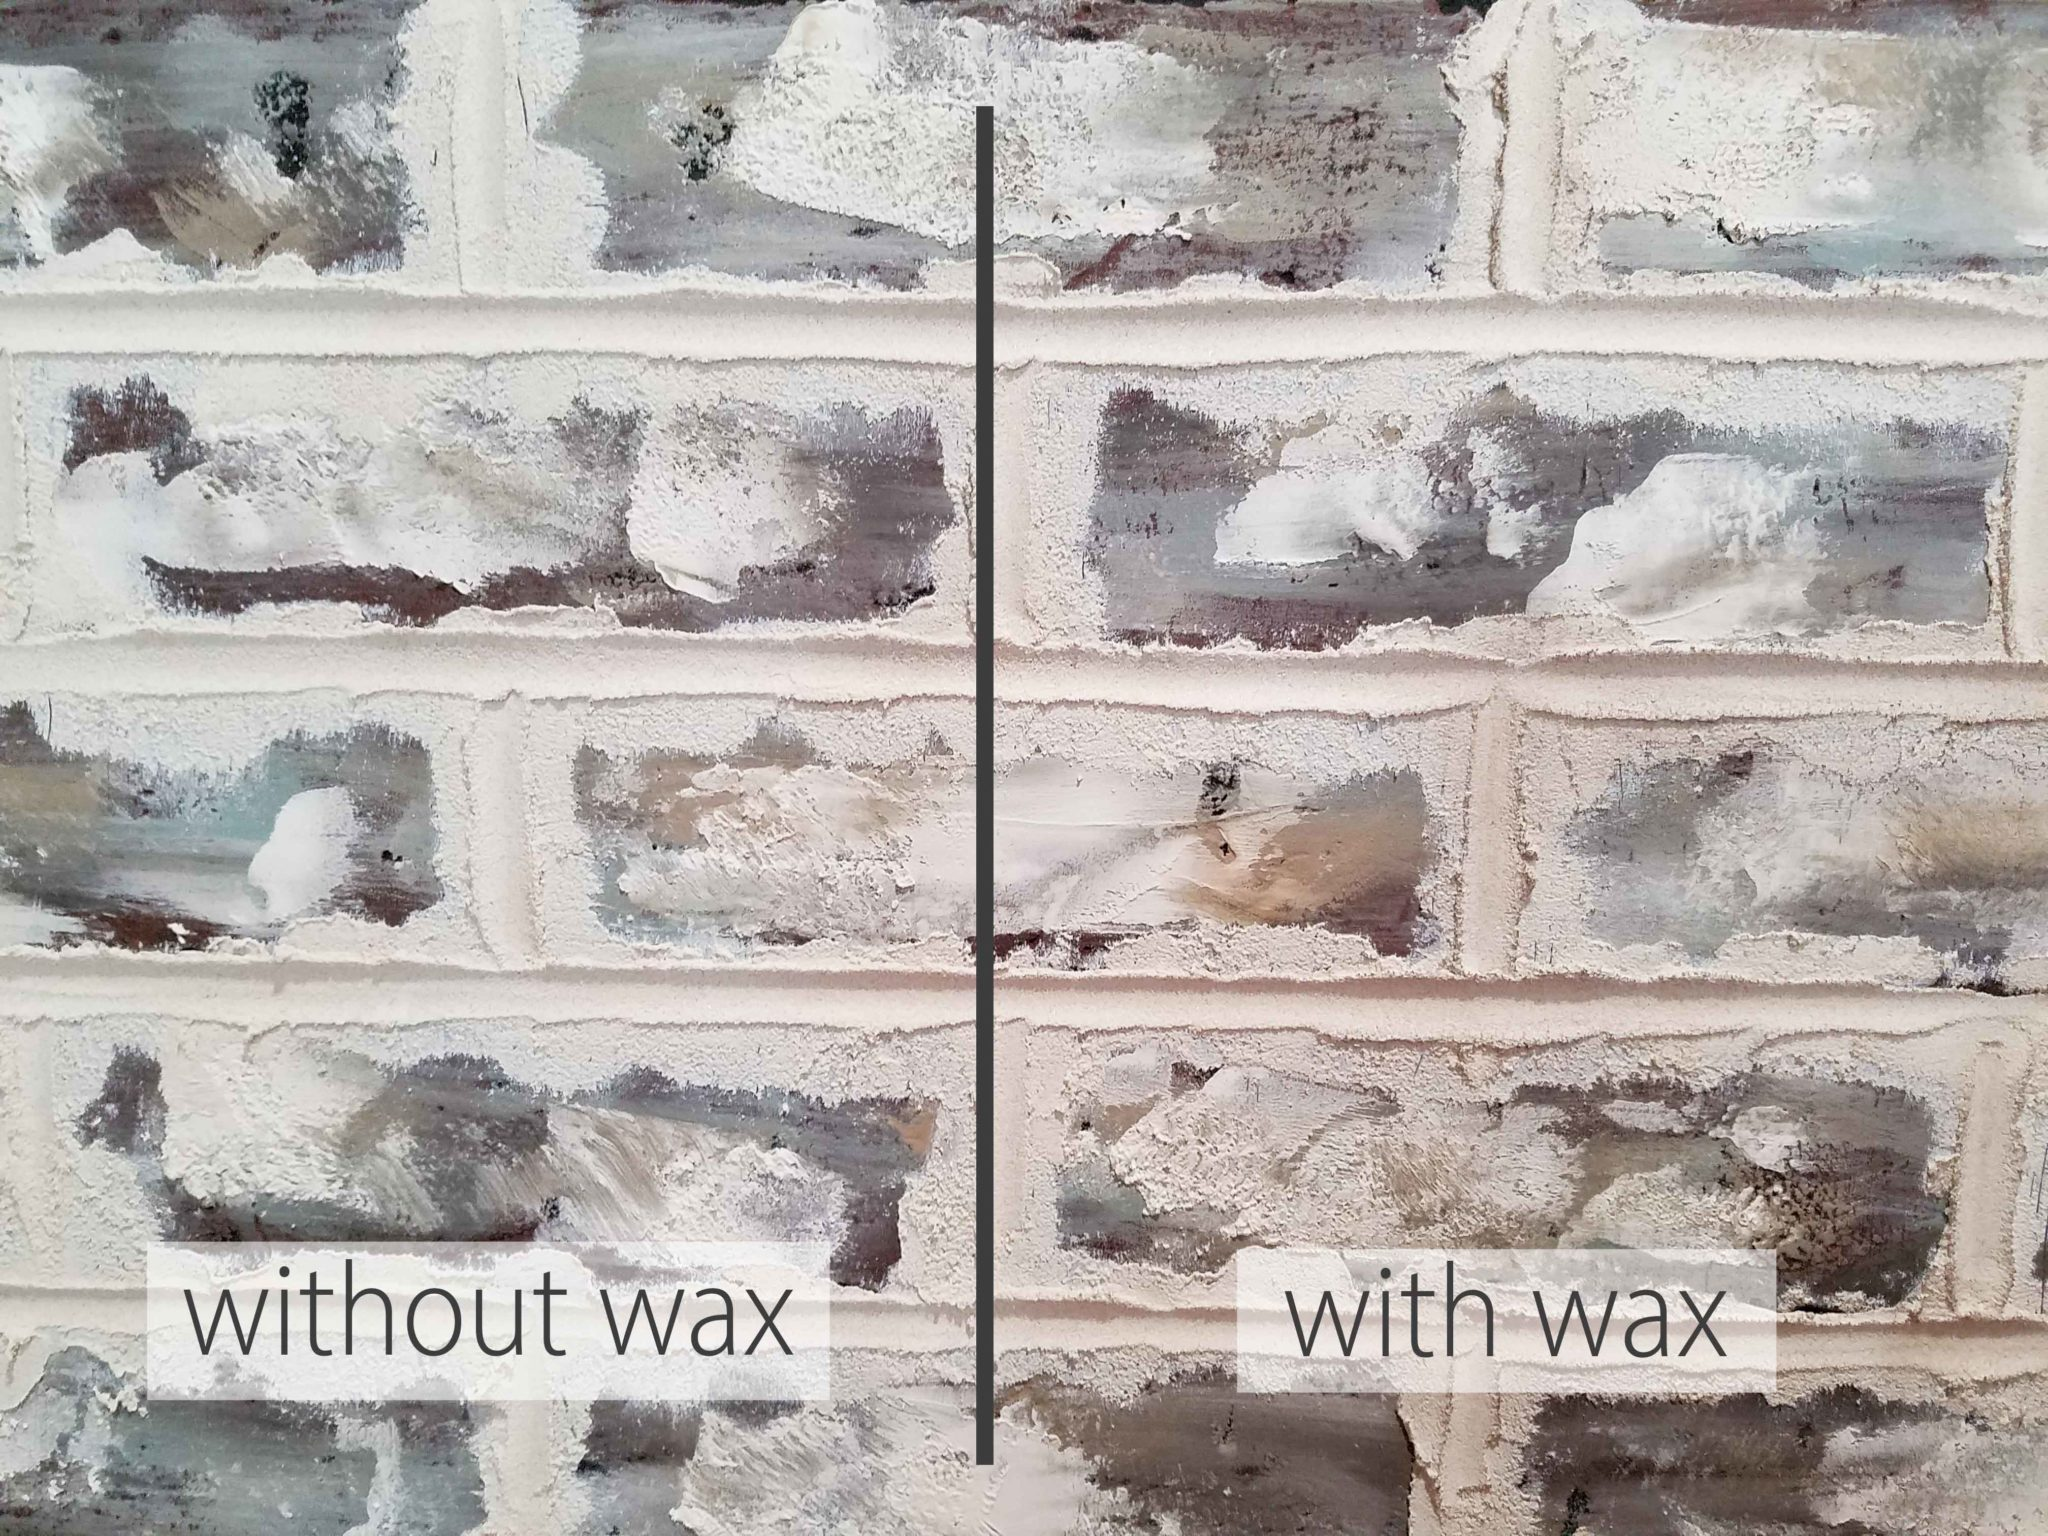 Wax Comparisons for Faux Brick Wall by Prodigal Pieces | prodigalpieces.com